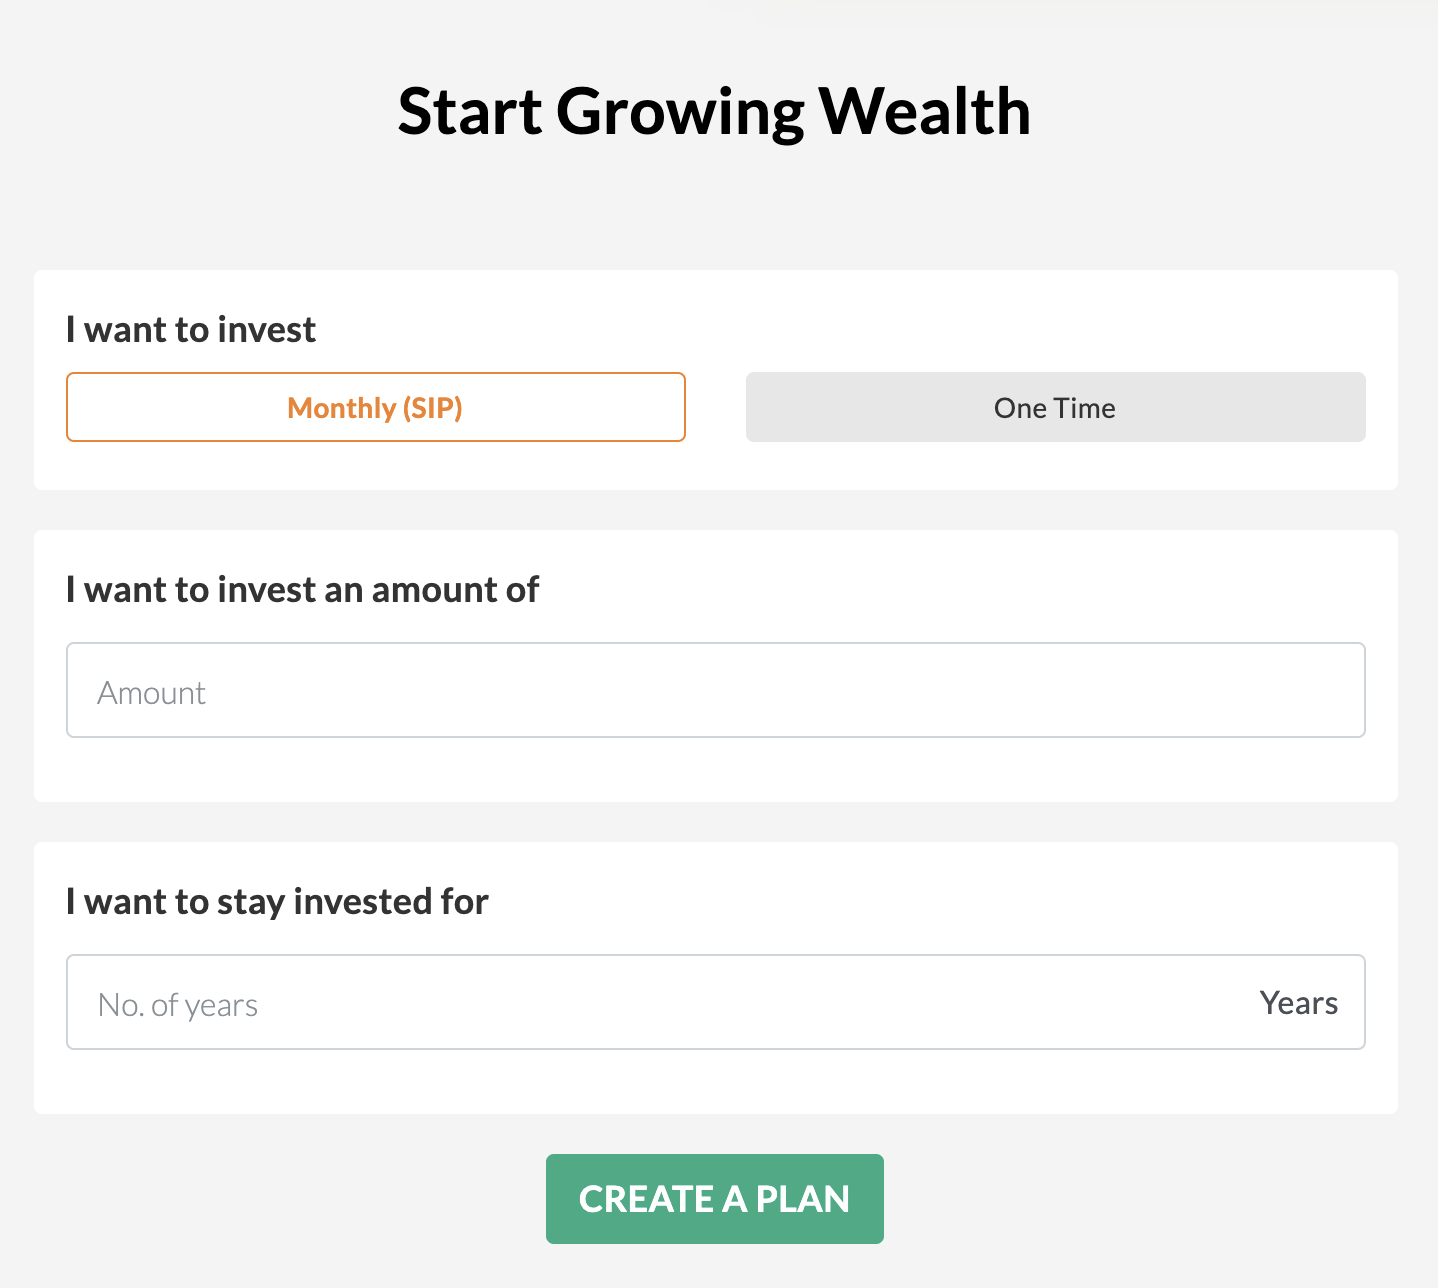 start growing wealth